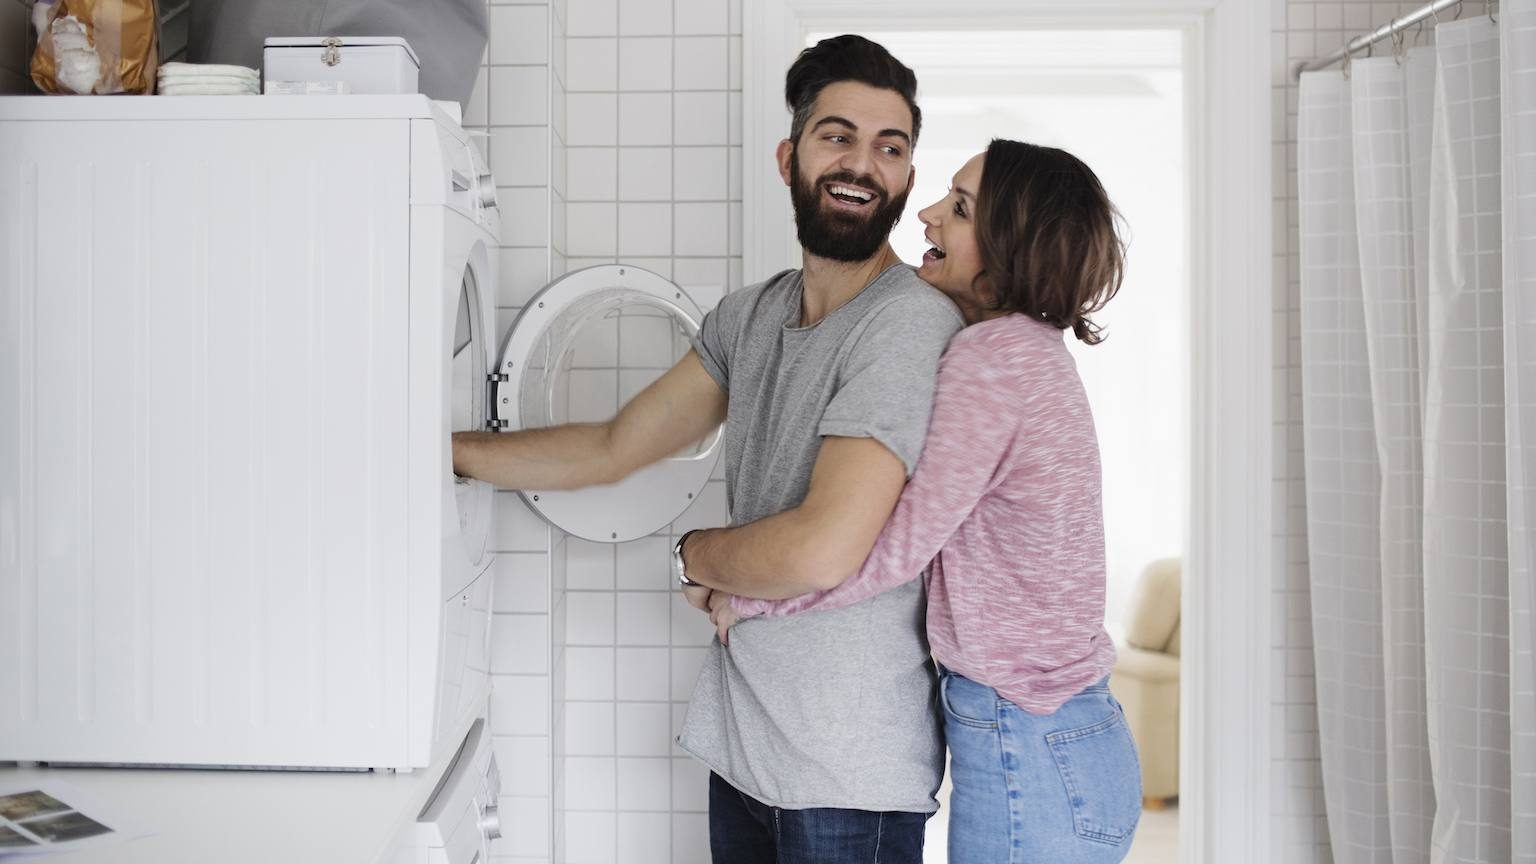 Happy couple putting clothes in washing machine.